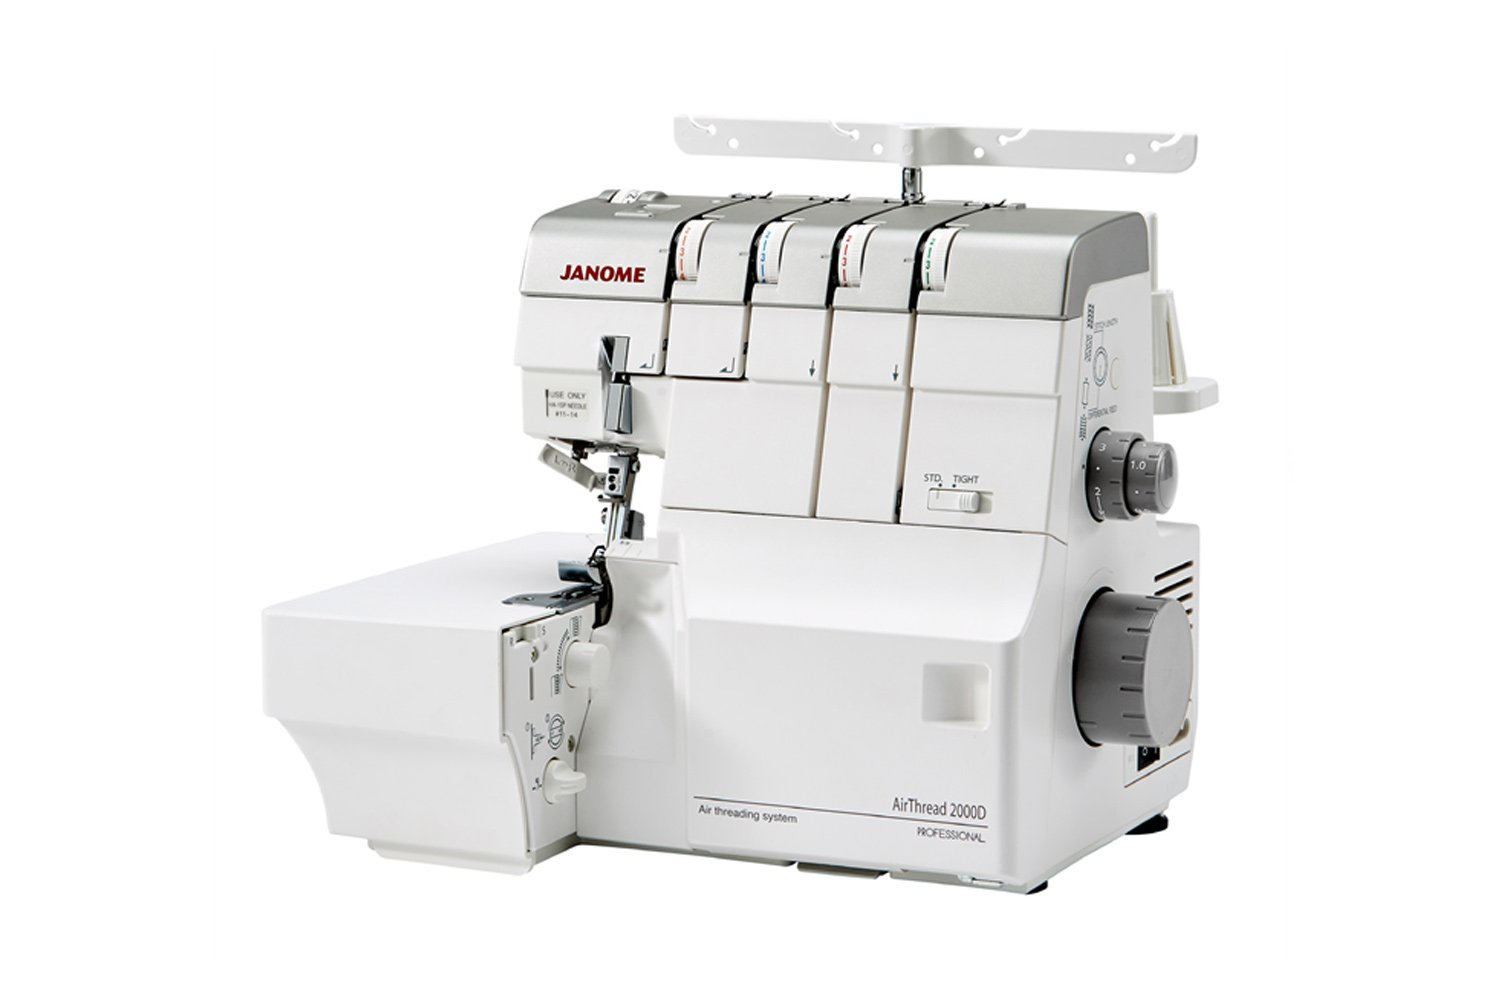 Janome AIRTHREAD 2000D SERGER